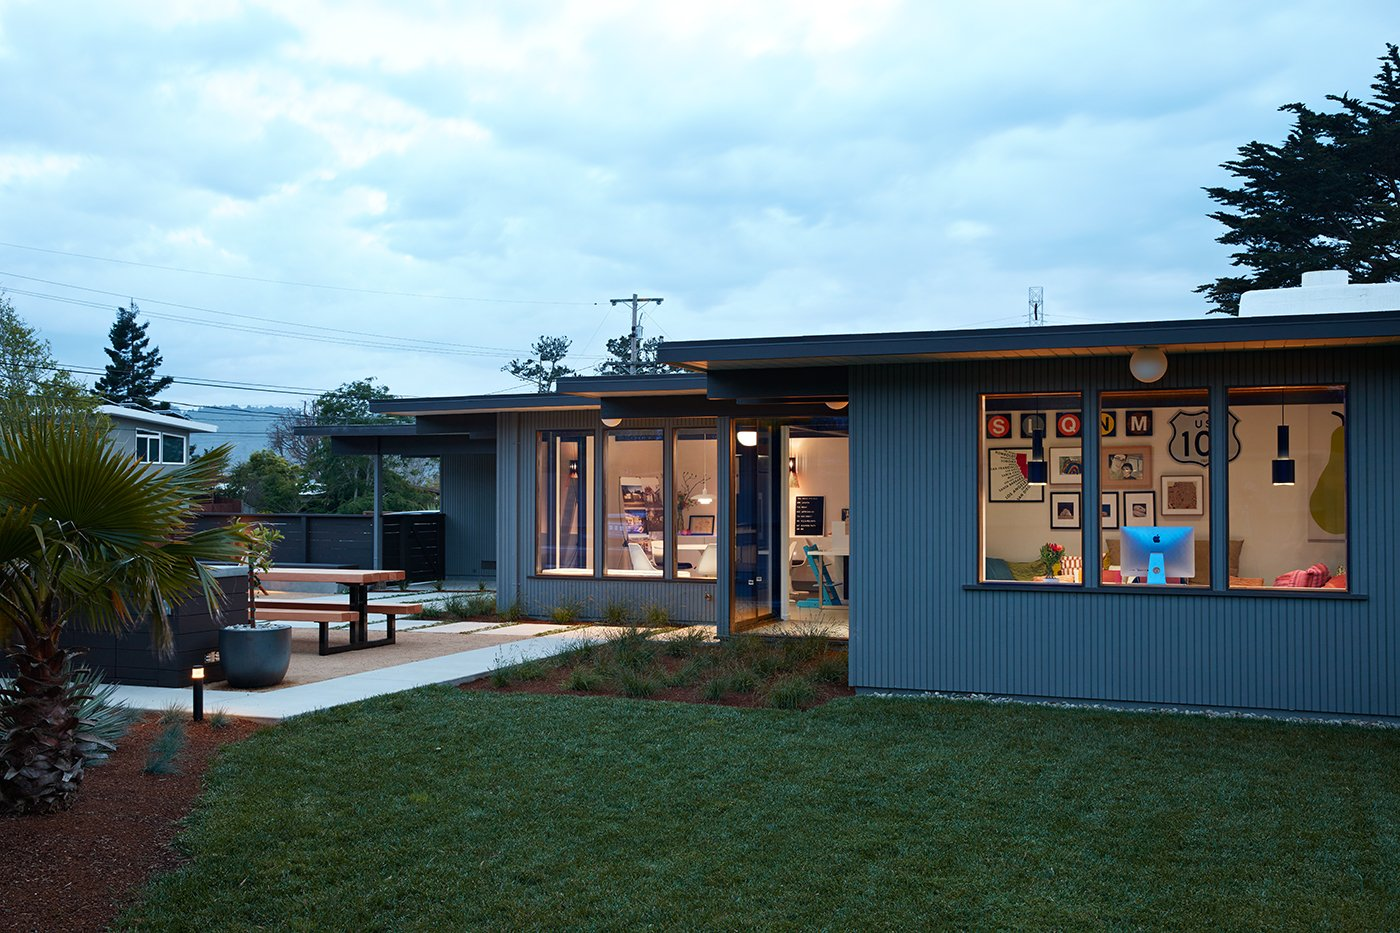 Eichler house in San Mateo Highlands - Klopf architecture - outside back garden